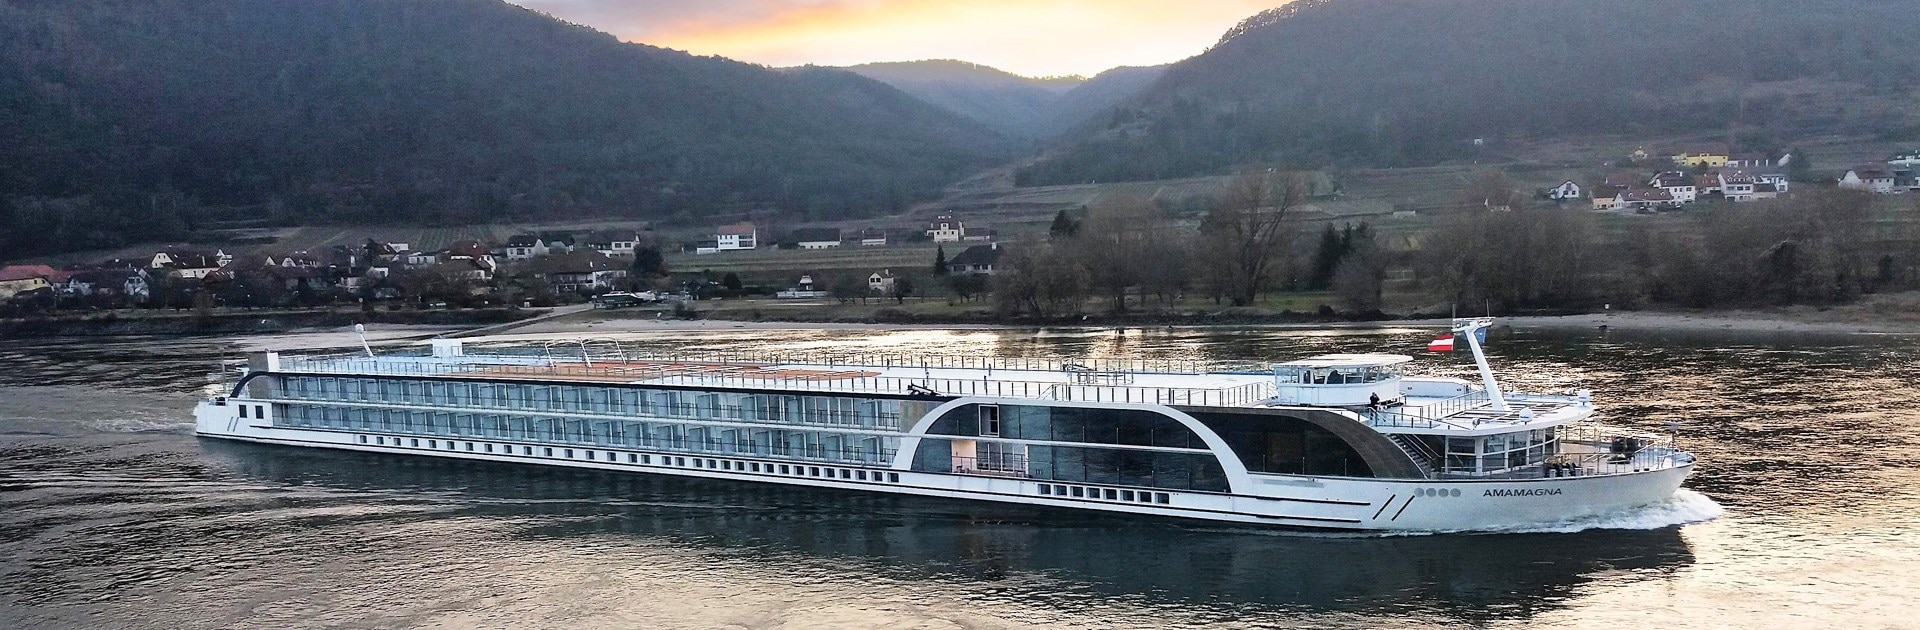 Amamagna Debuts On The Danube In 2019 Amawaterways